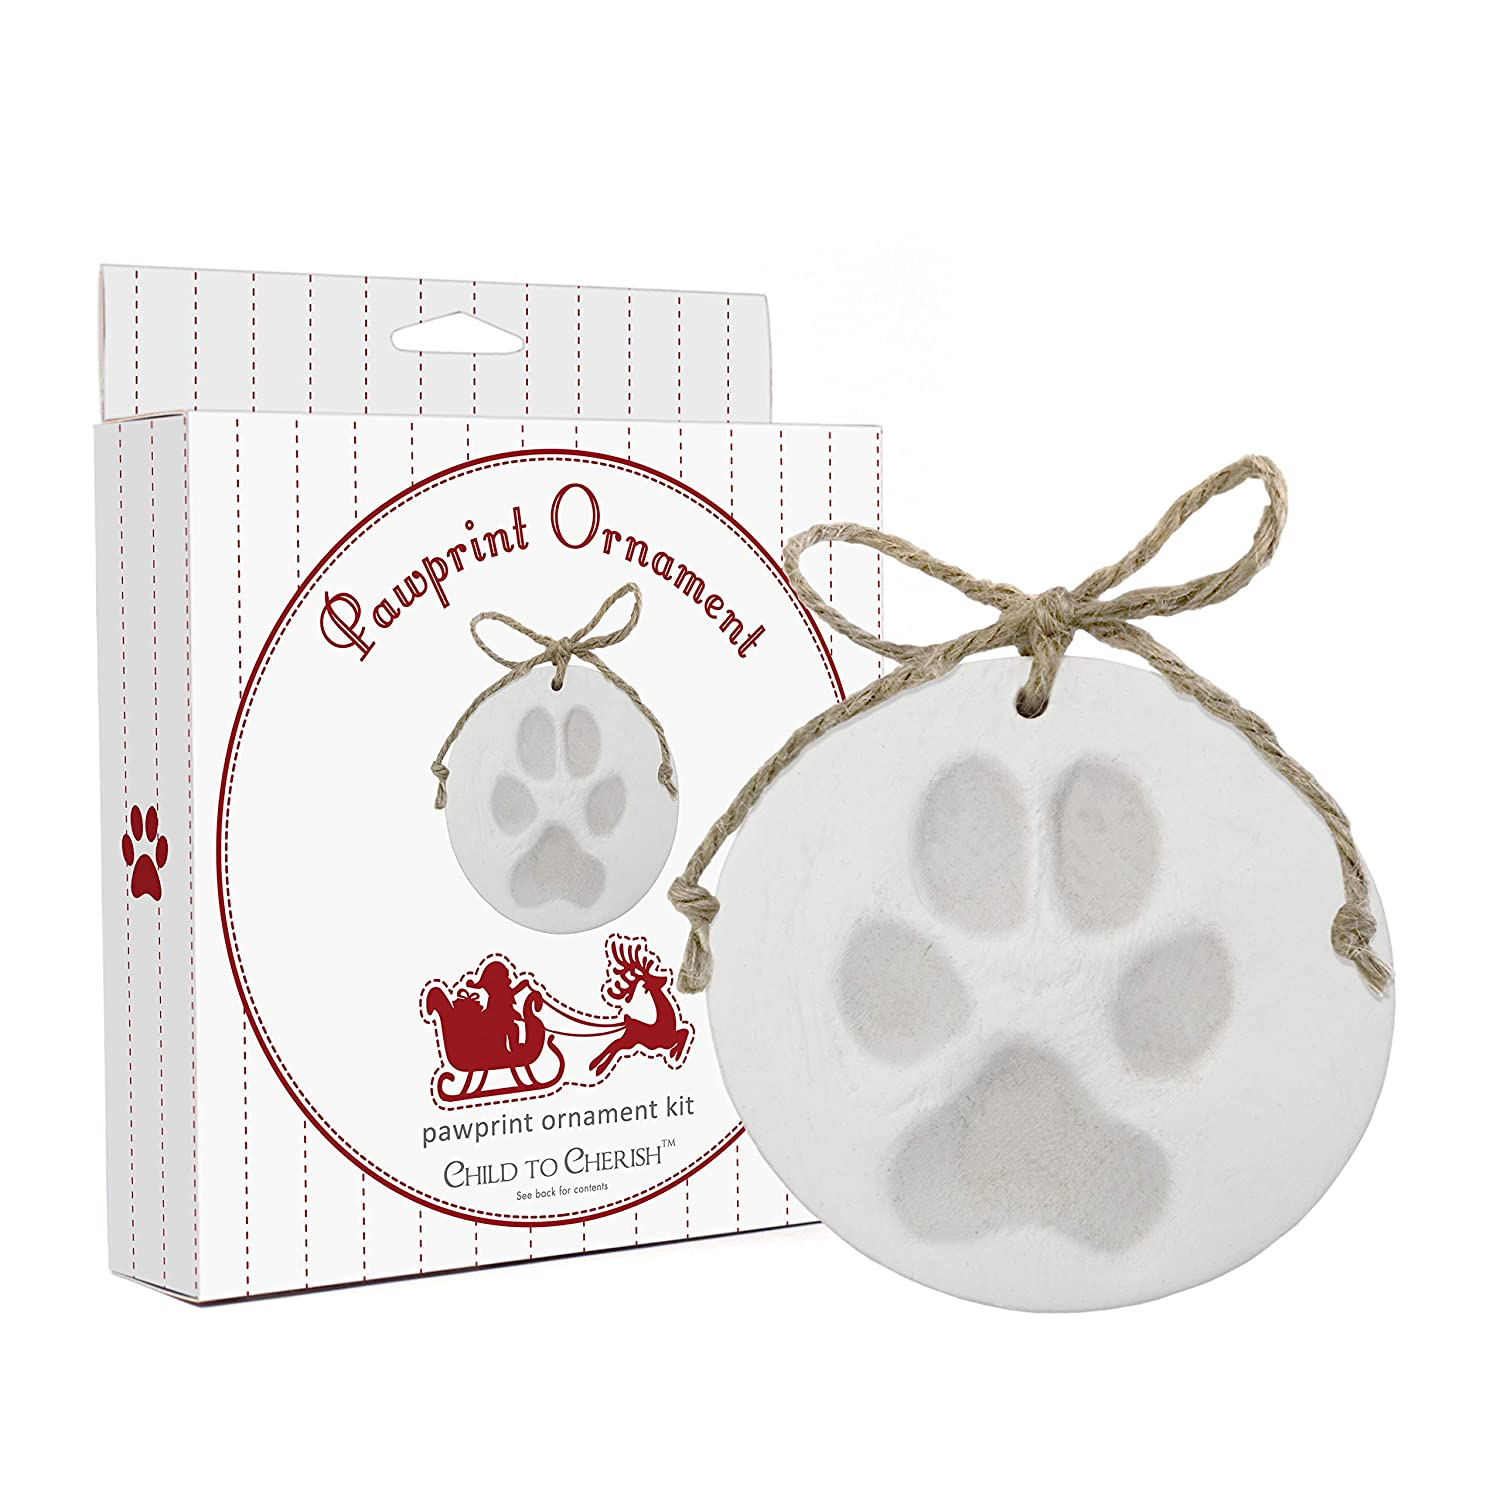 Child to Cherish Paw Print Pet Ornament Kit for Cats or Dogs